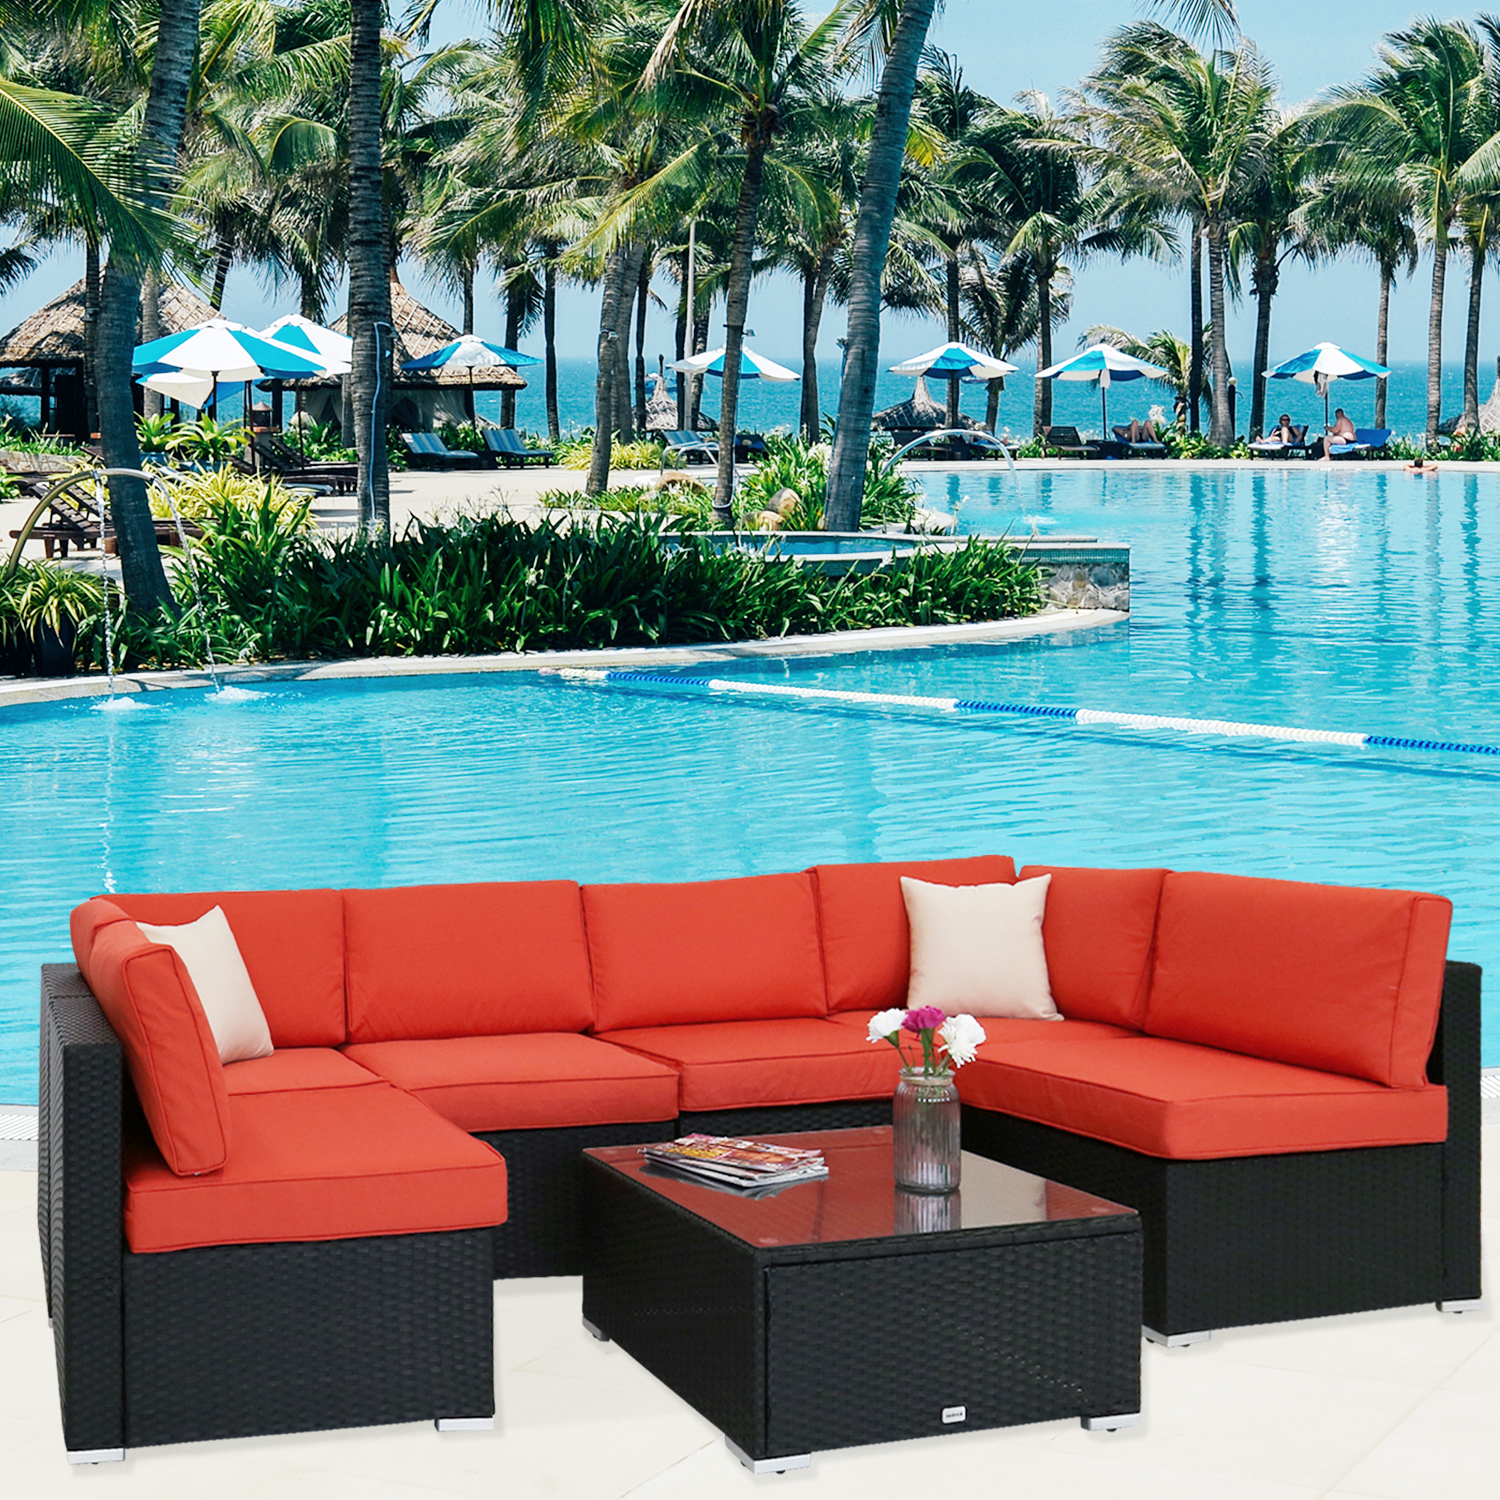 Kinbor 7pcs Outdoor Furniture Pe Rattan Wicker Sofa Sectional Cushioned Deck Couch Set Orange